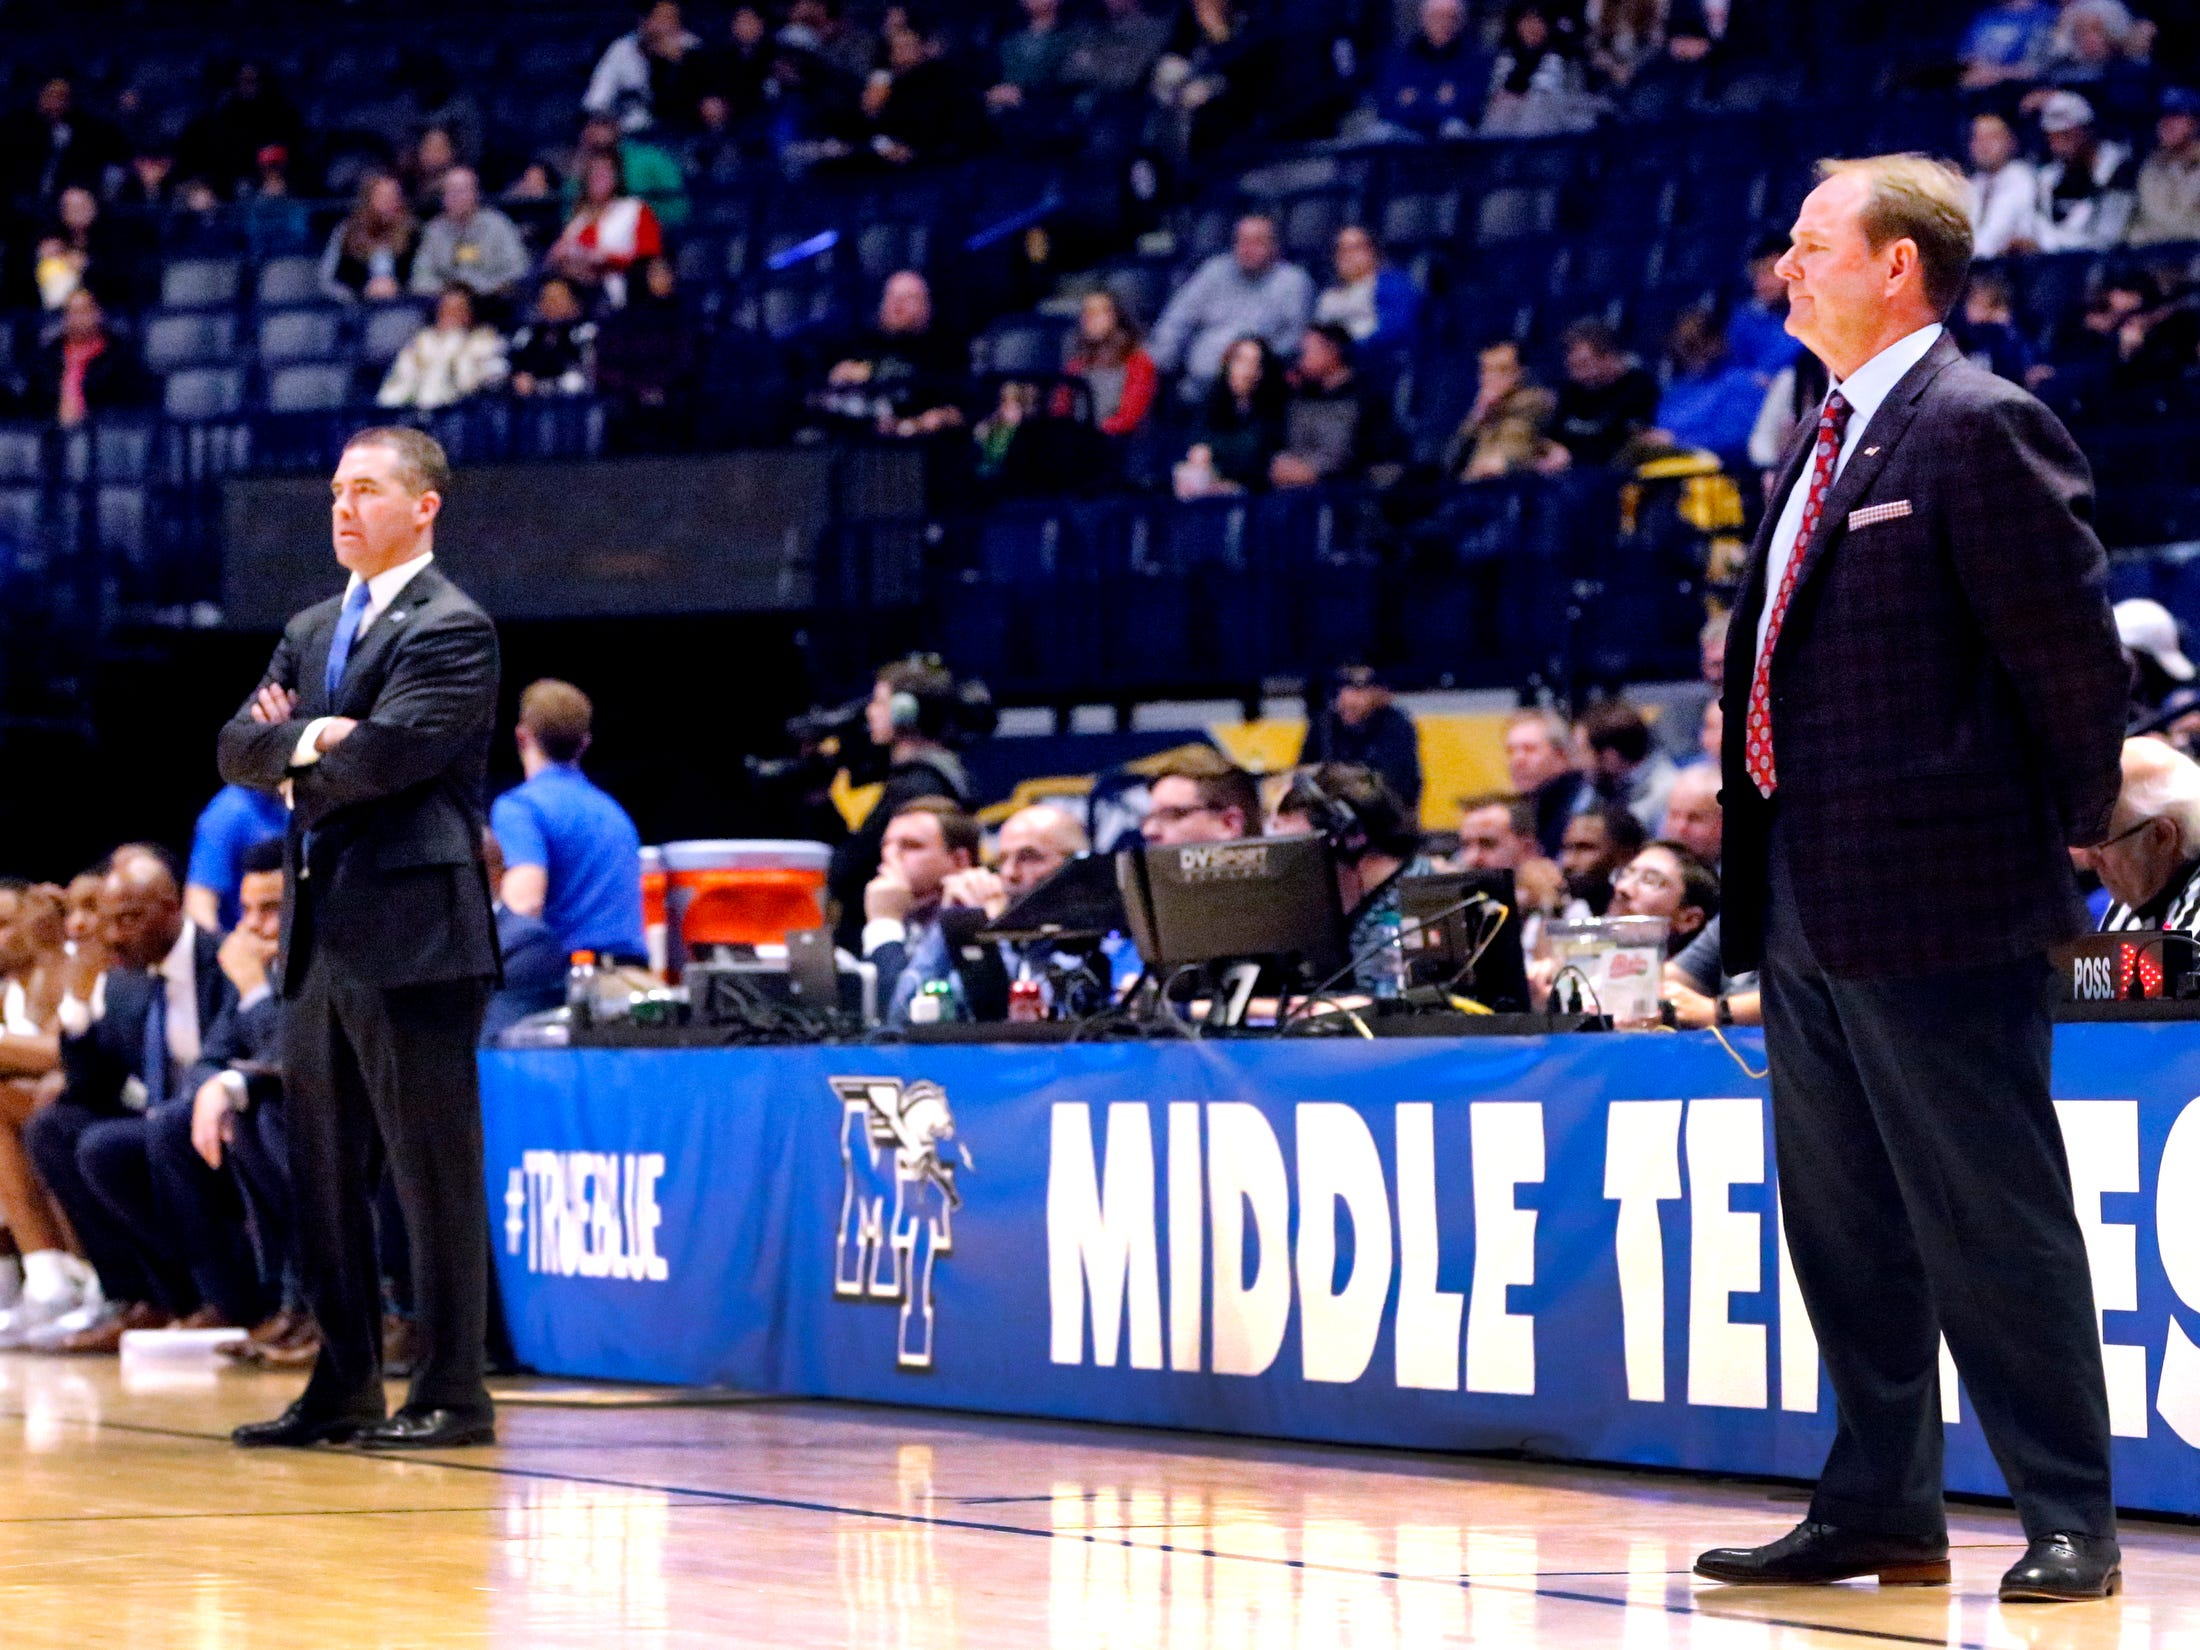 Ole Miss' head coach Kermit Davis, right, stands on the sidelines as MTSU's head coach Nick McDevitt also watches the game from the sidelines on Friday Dec. 21, 2018, at Bridgestone Arena. Davis was the former MTSU Mens coach.